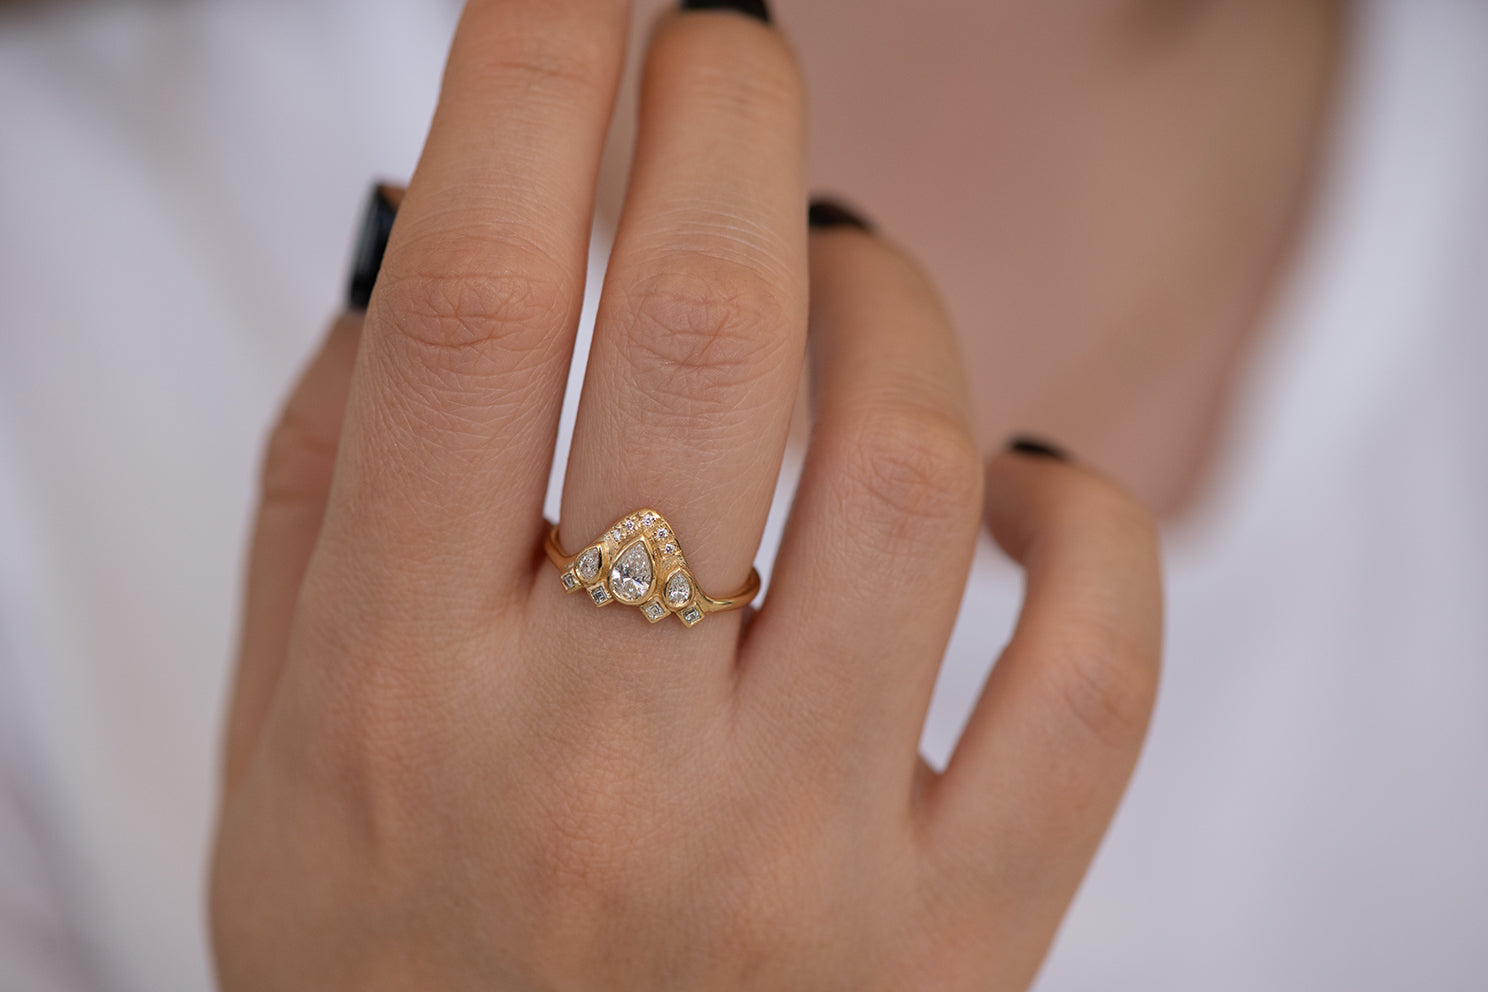 Pear Shaped Diamond Ring on Hand Top Down View